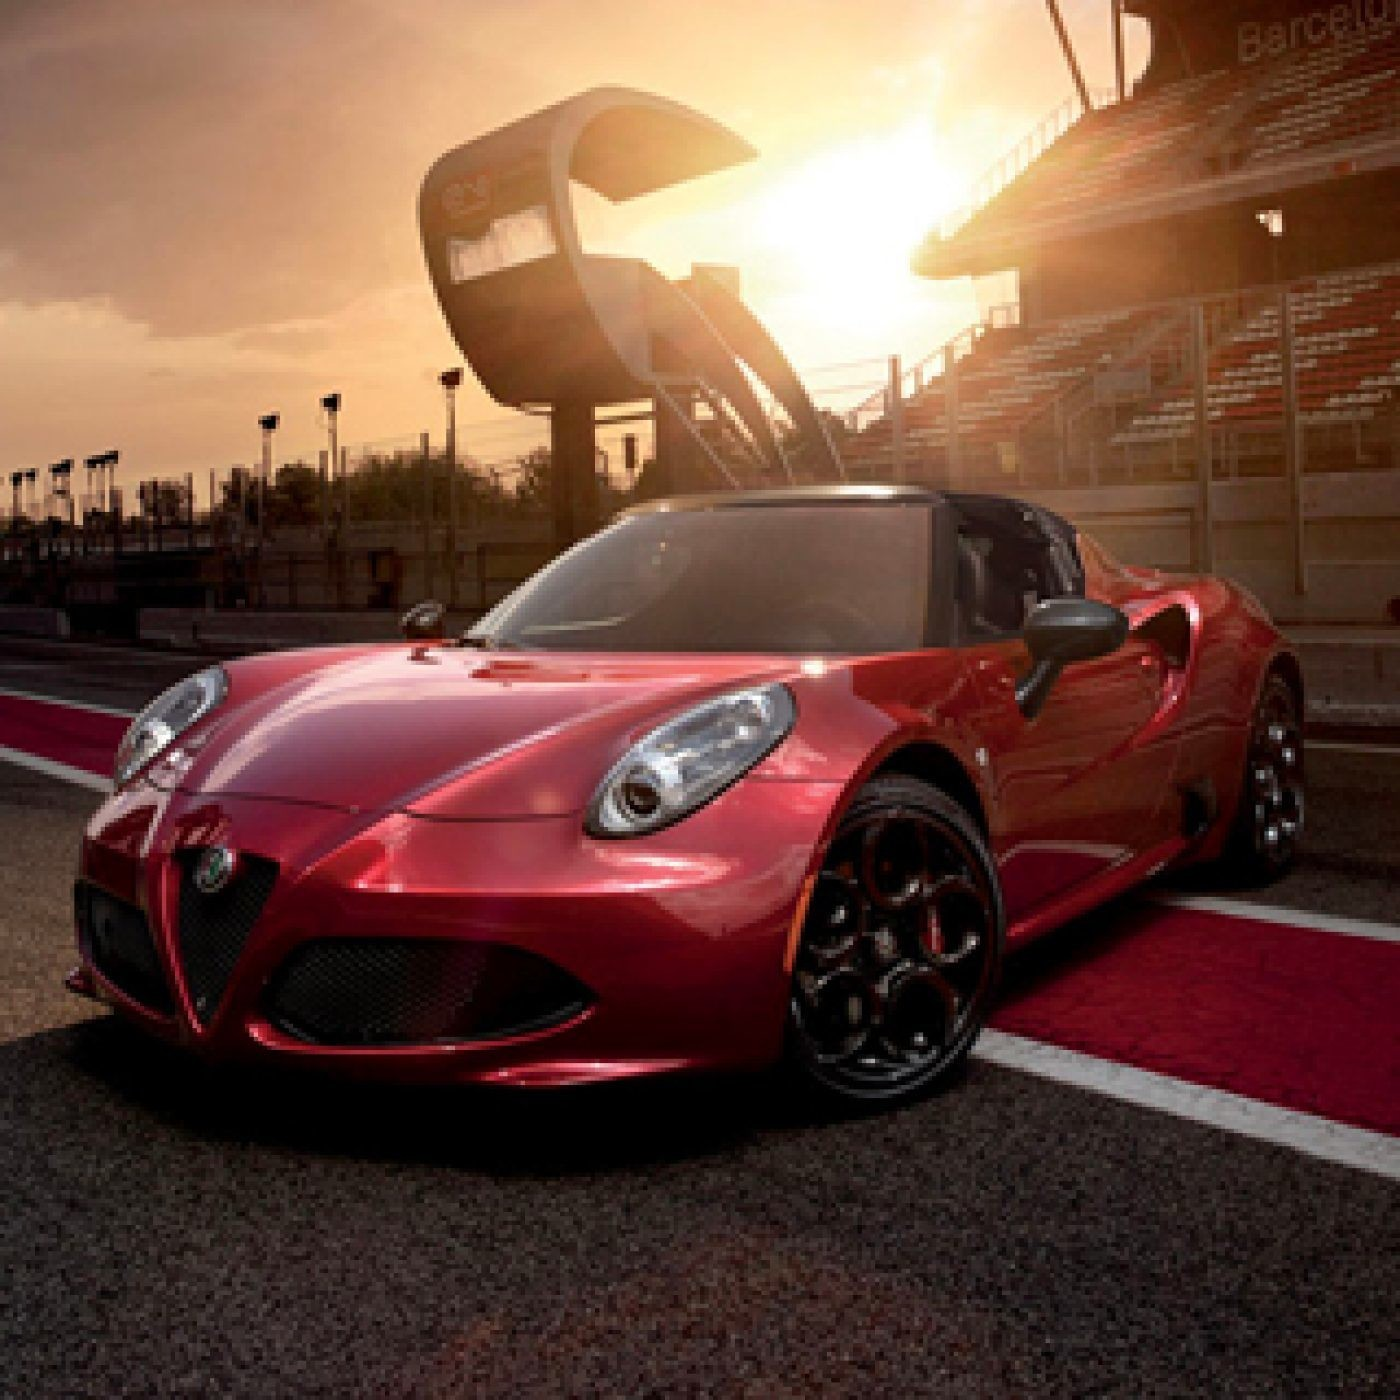 Front view of the red 2019 Alfa Romeo 4C Spider parked on a race track